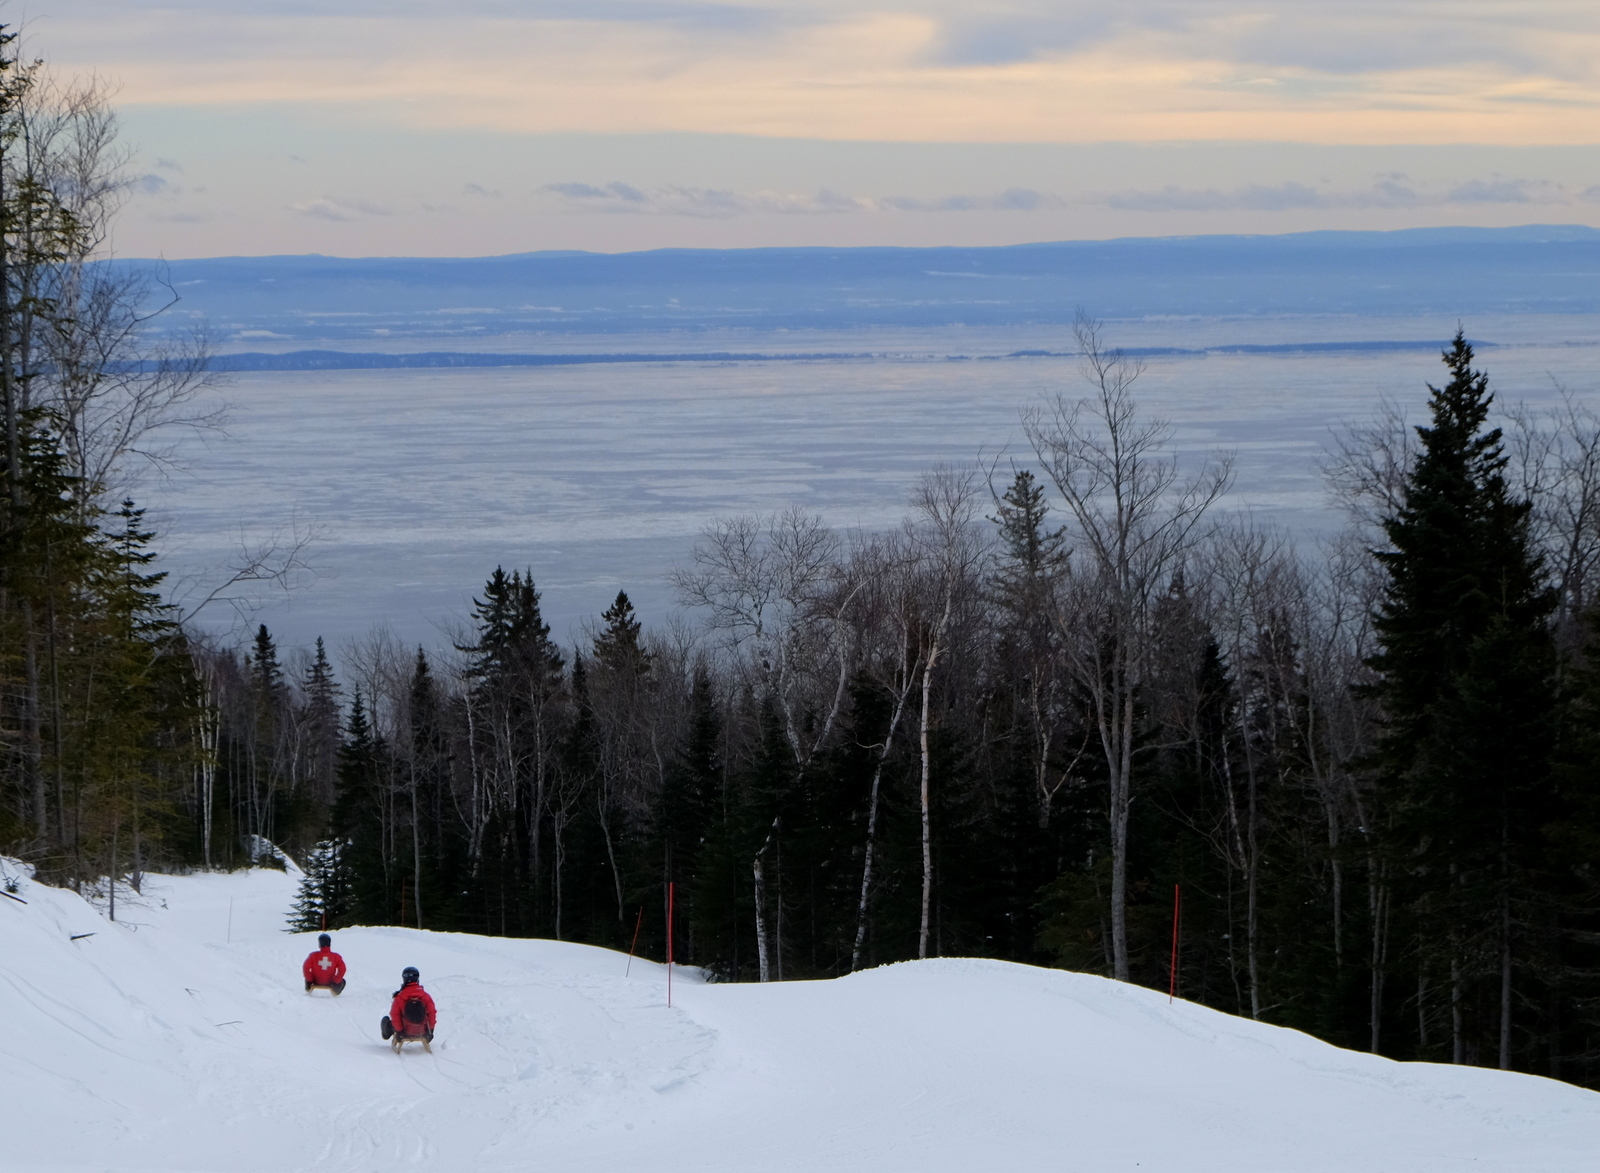 Try a luge/sled ride at Le Massif, Quebec for a great way to enjoy winter. - JIM BYERS PHOTO